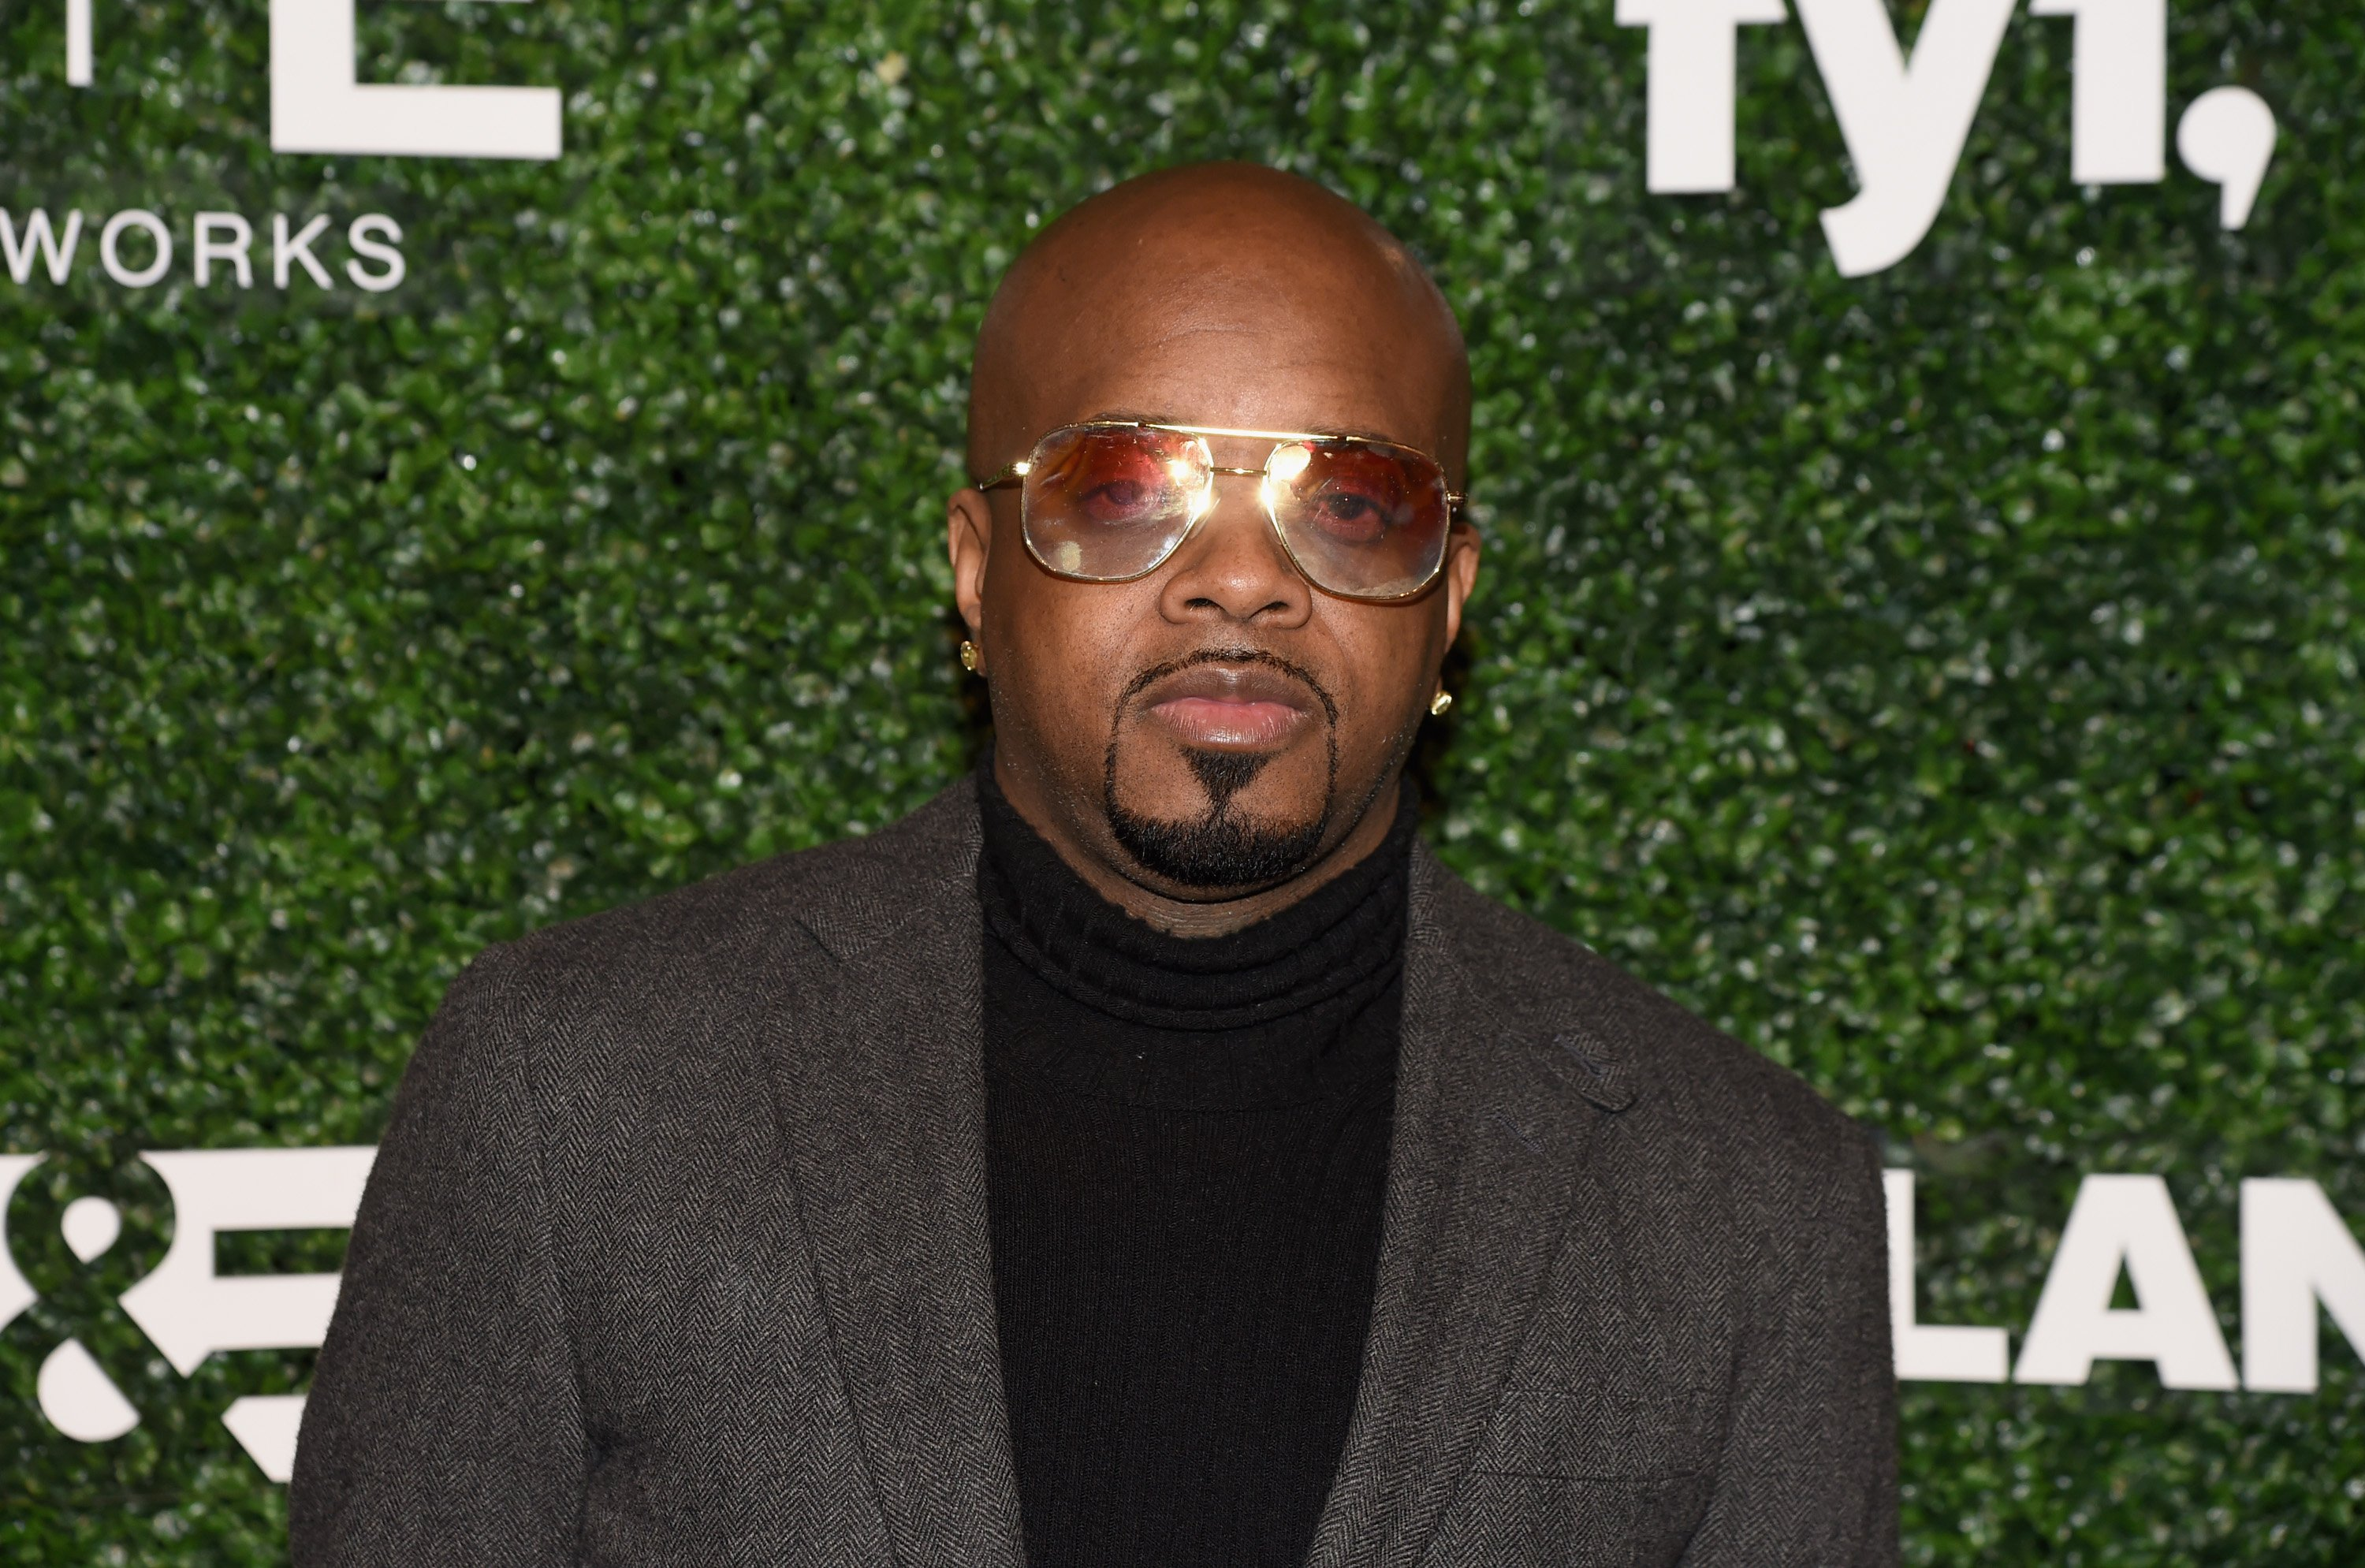 Jermaine Dupri attends the 2017 A+E Networks Upfront At Jazz At Lincoln Center's Frederick P. Rose Hall on March 21, 2017 in New York City. | Photo: GettyImages